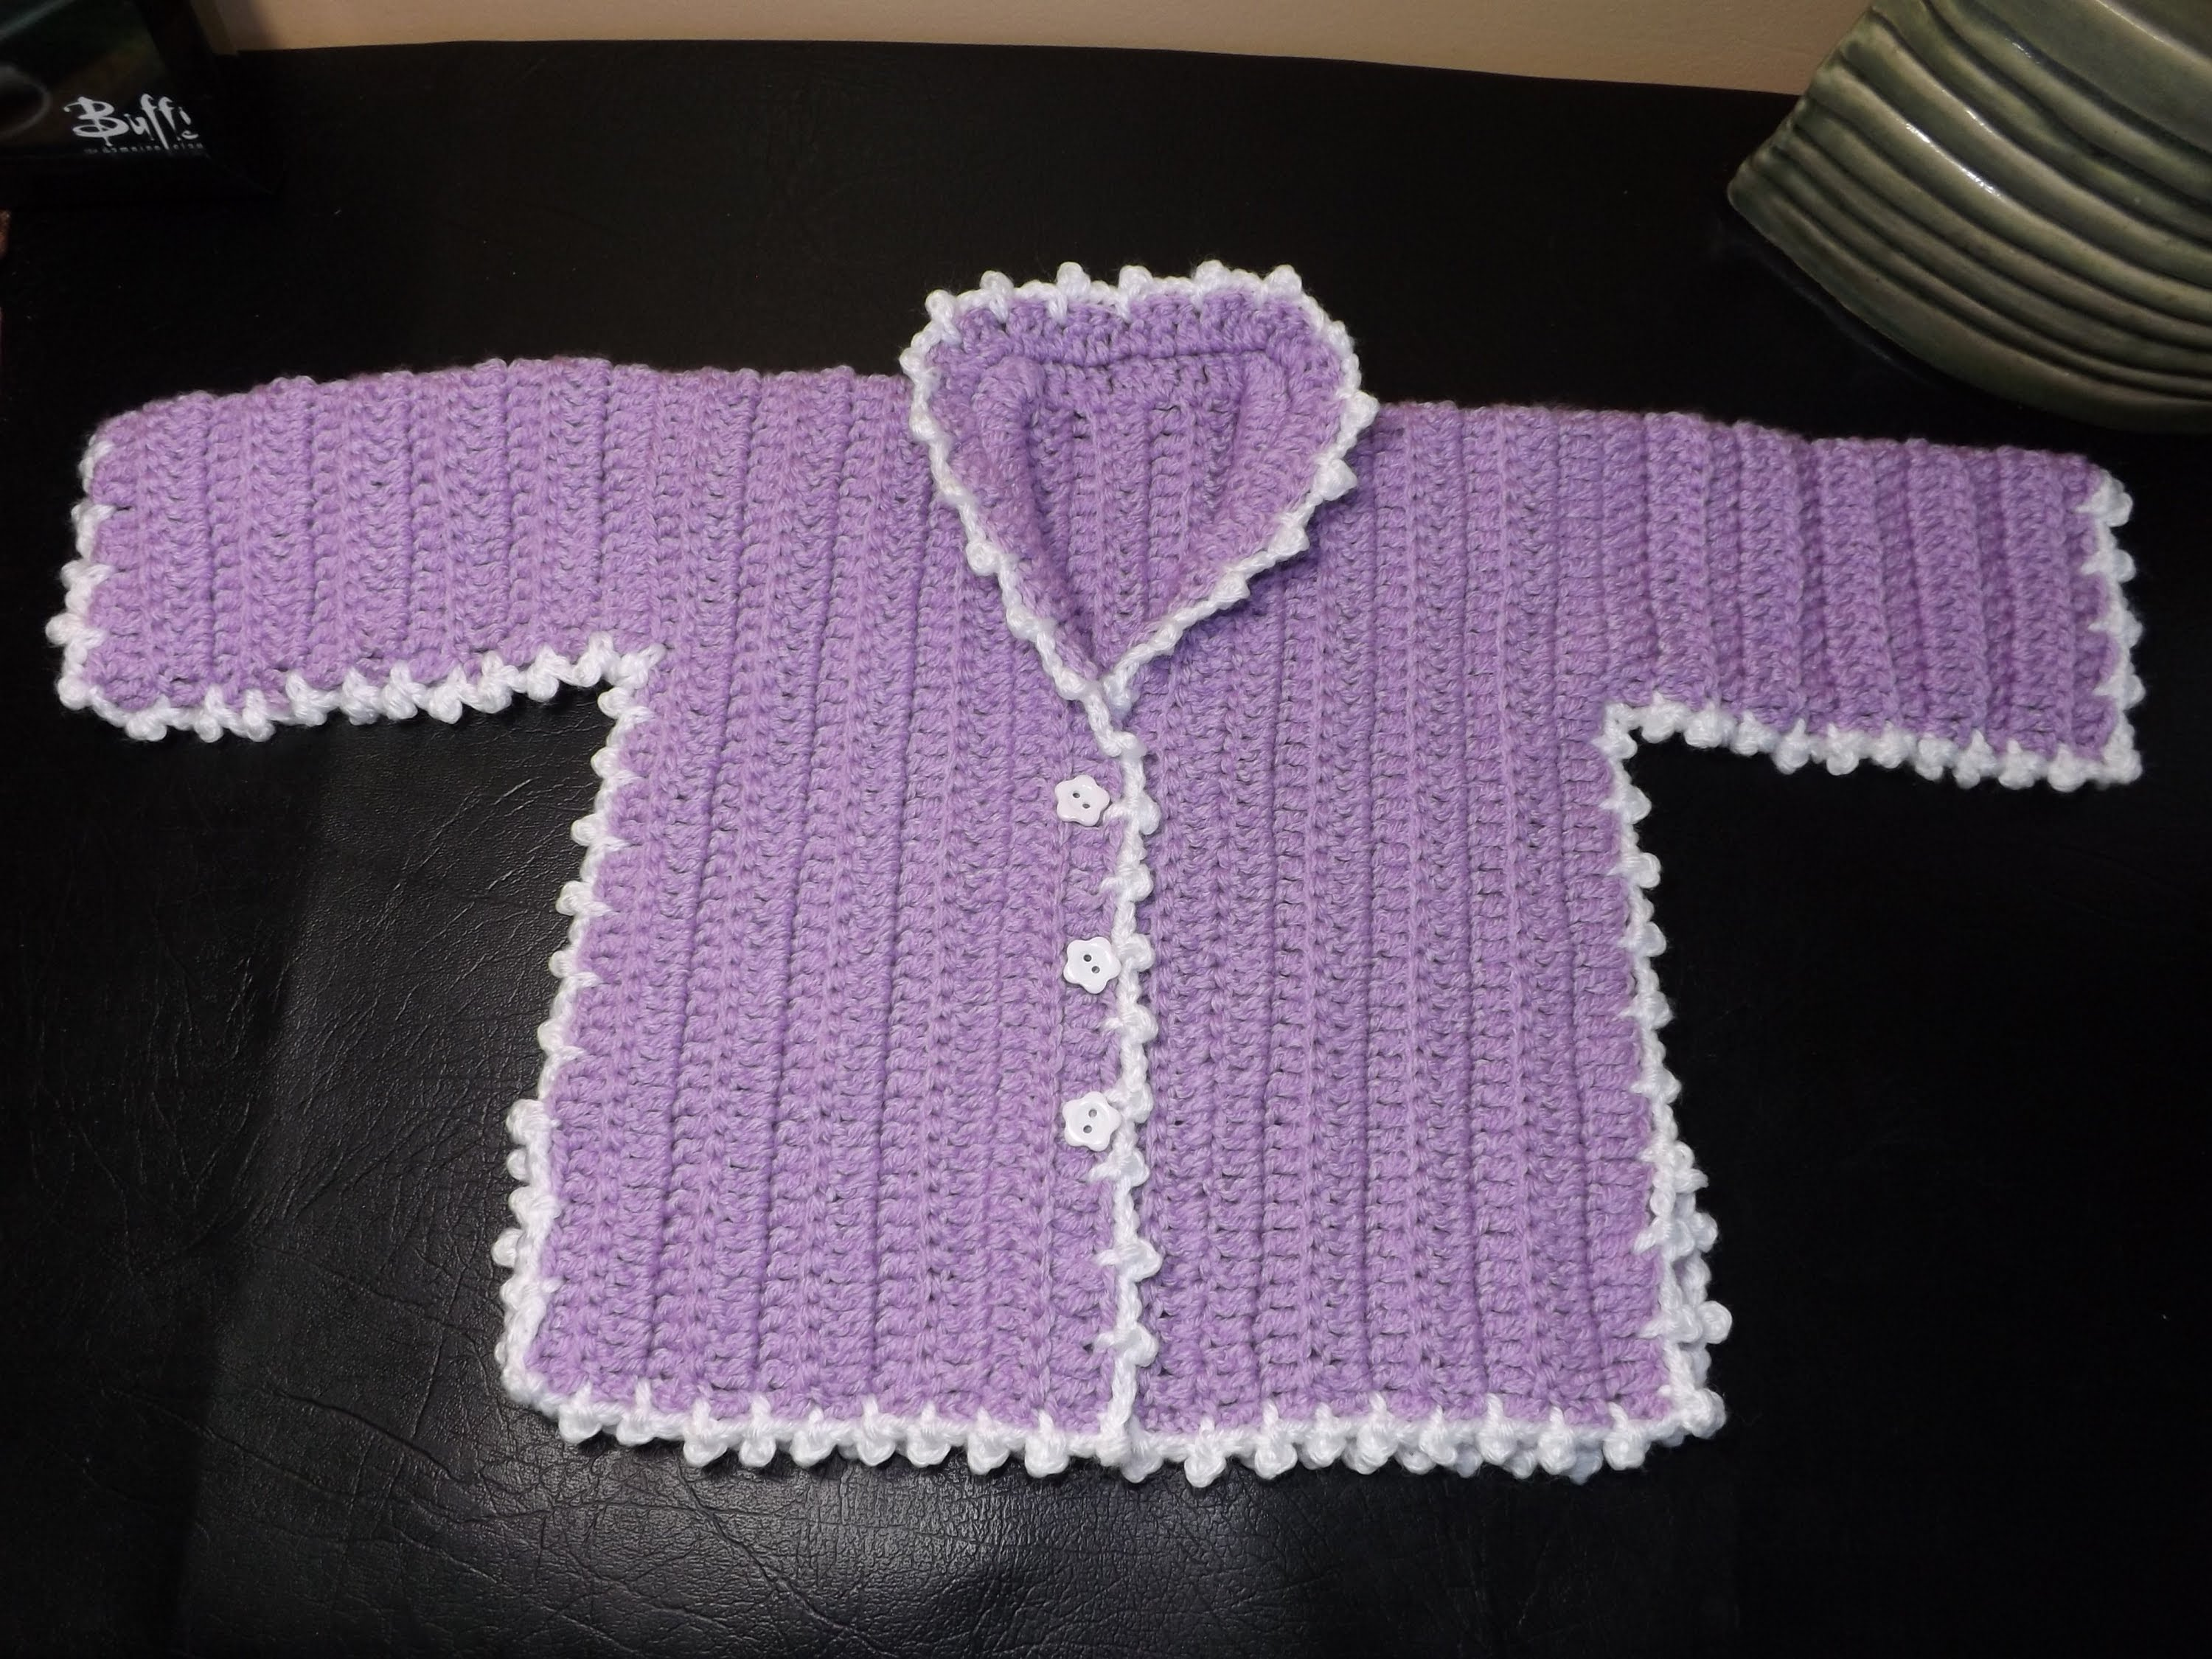 crochet baby sweater how to crochet a baby sweater lilac - with ruby stedman - youtube BBQYJZE